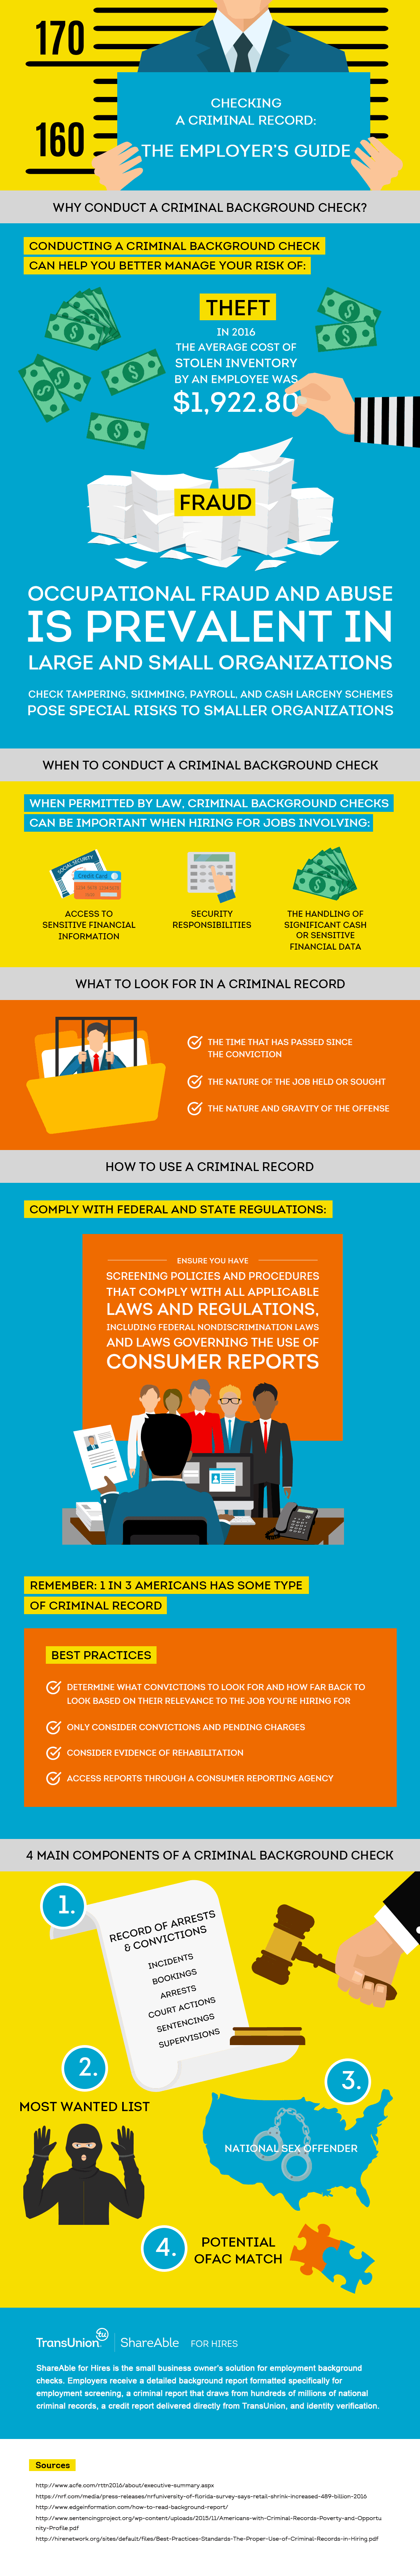 Employer's Guide To Checking a Criminal Record [INFOGRAPHIC]